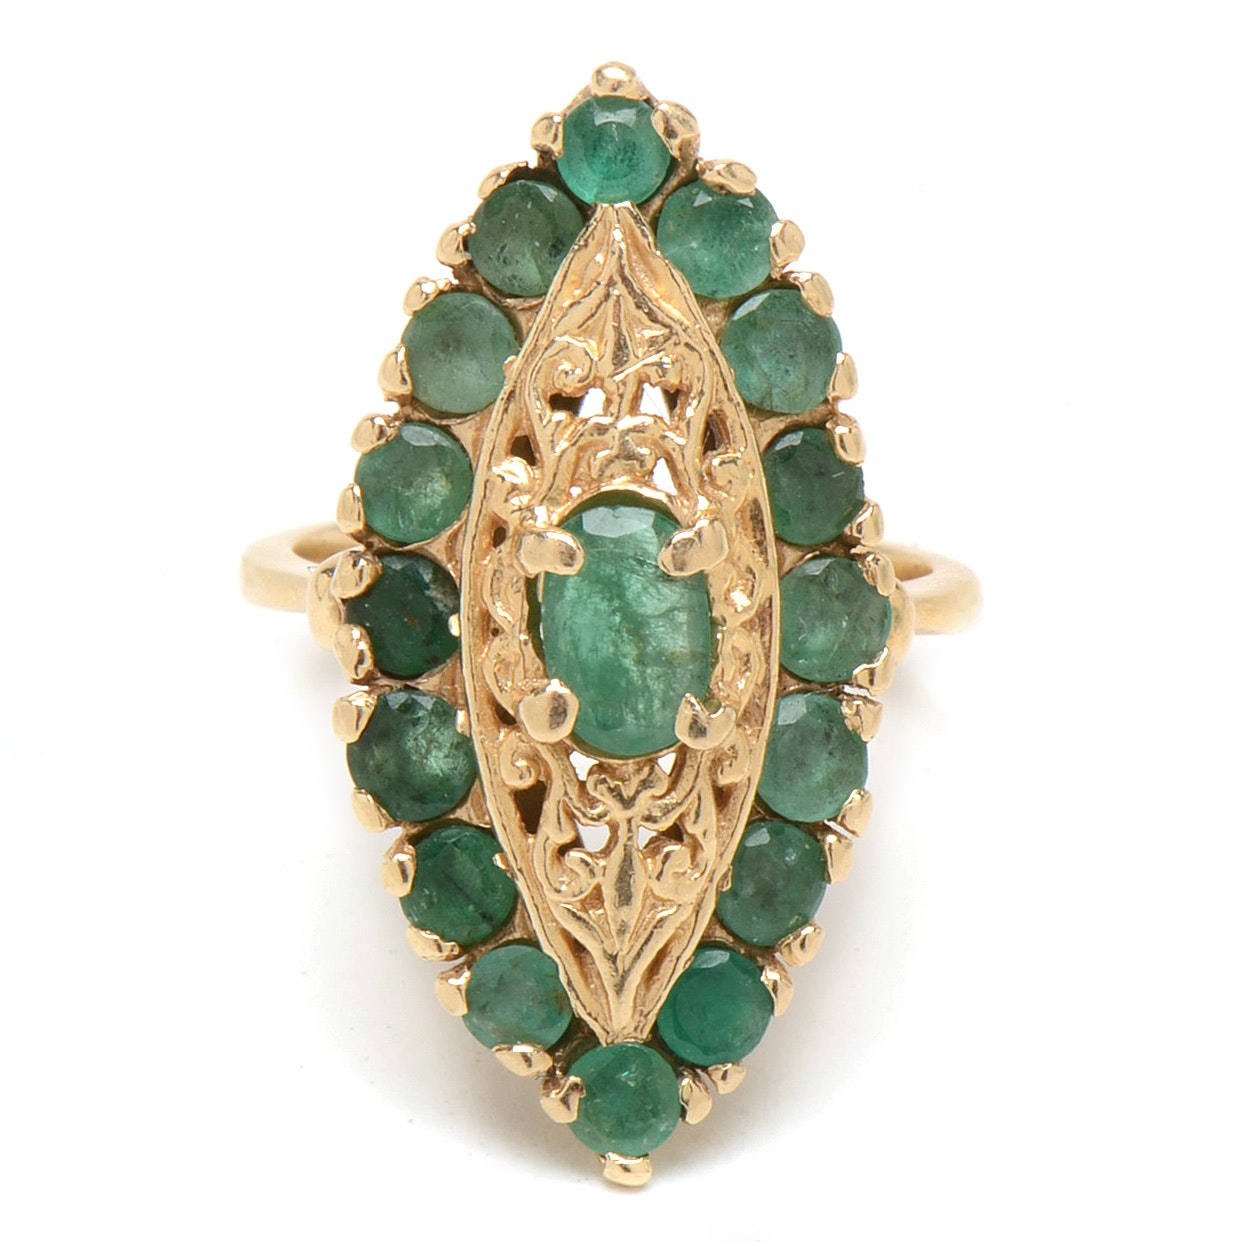 Vintage 14K Yellow Gold Emerald Marquise Shaped Openwork Ring